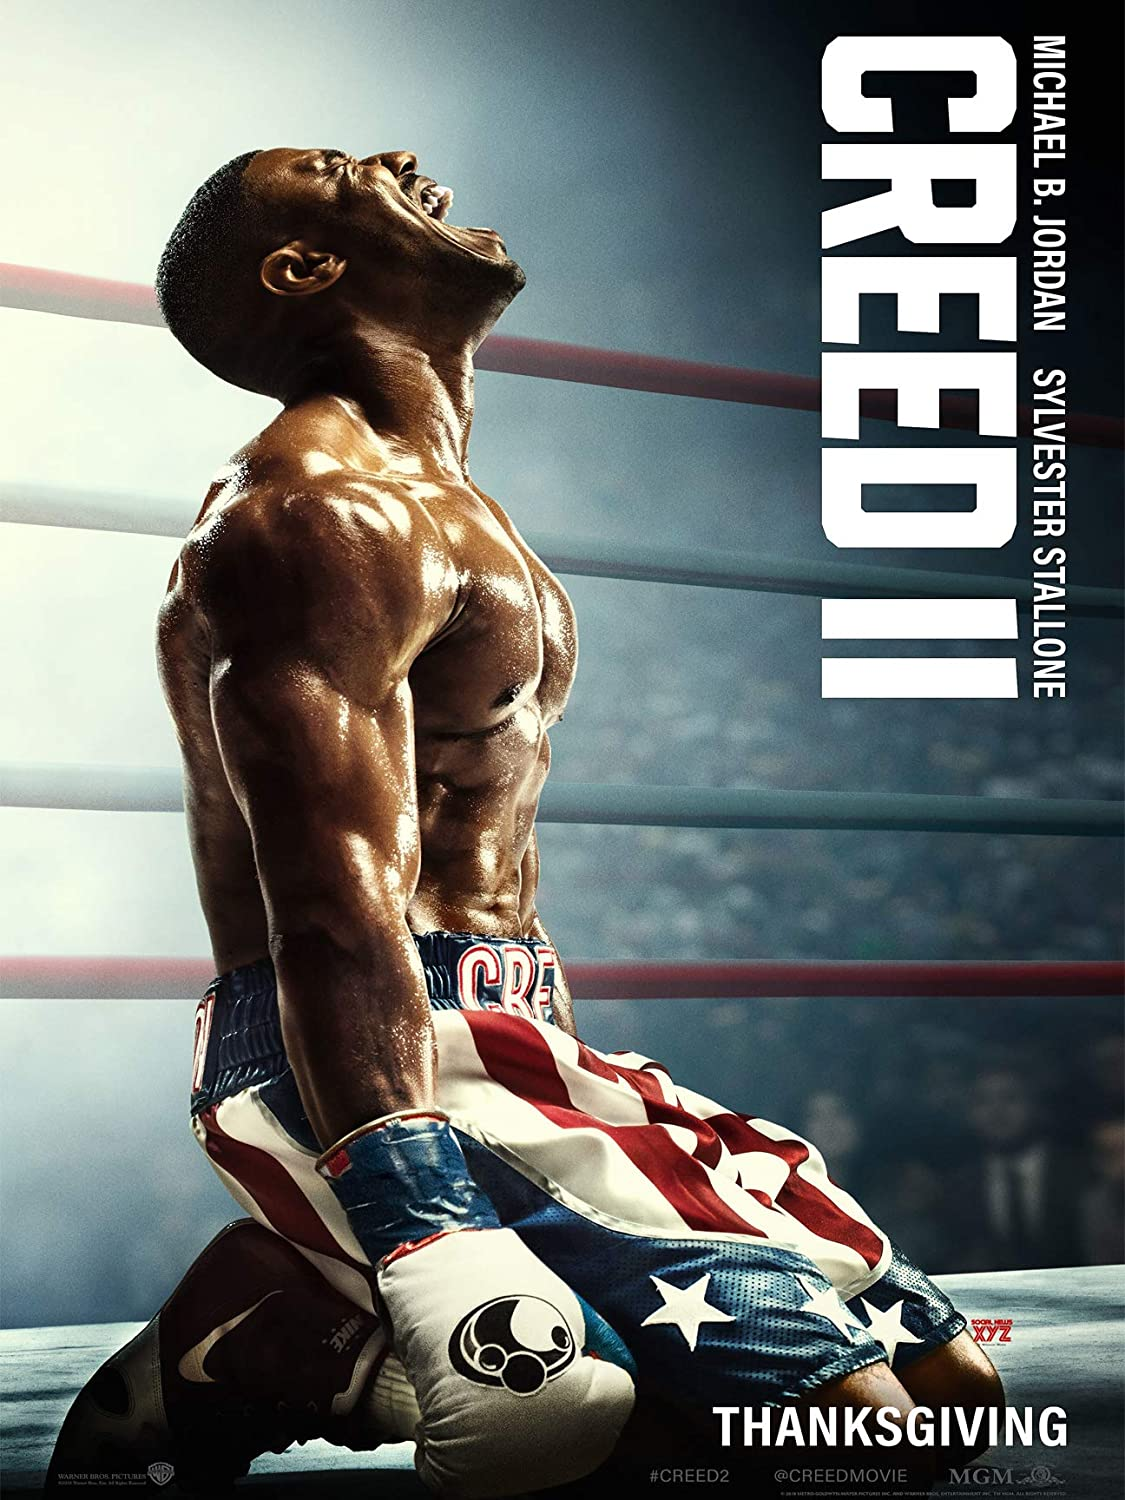 Kai'Sa Creed II Movie Poster Art Print Posters 18×24 Inches Unframed Poster Print